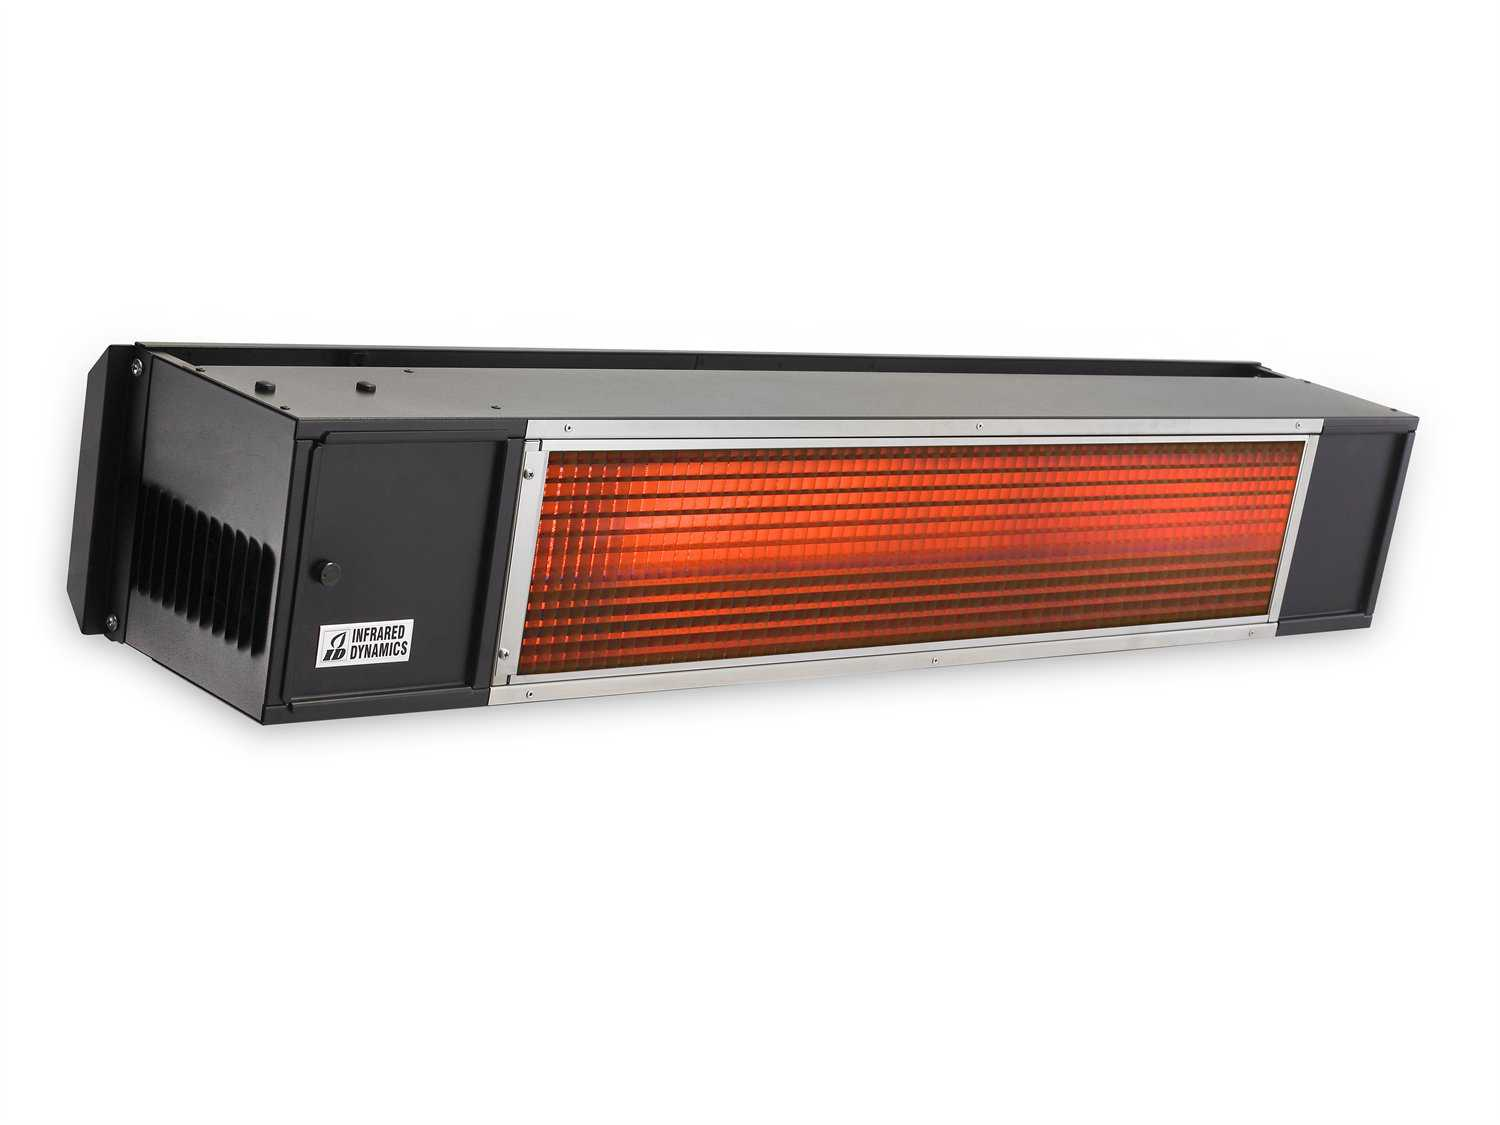 Sunpak S25 Steel Black Infrared Outdoor Heater